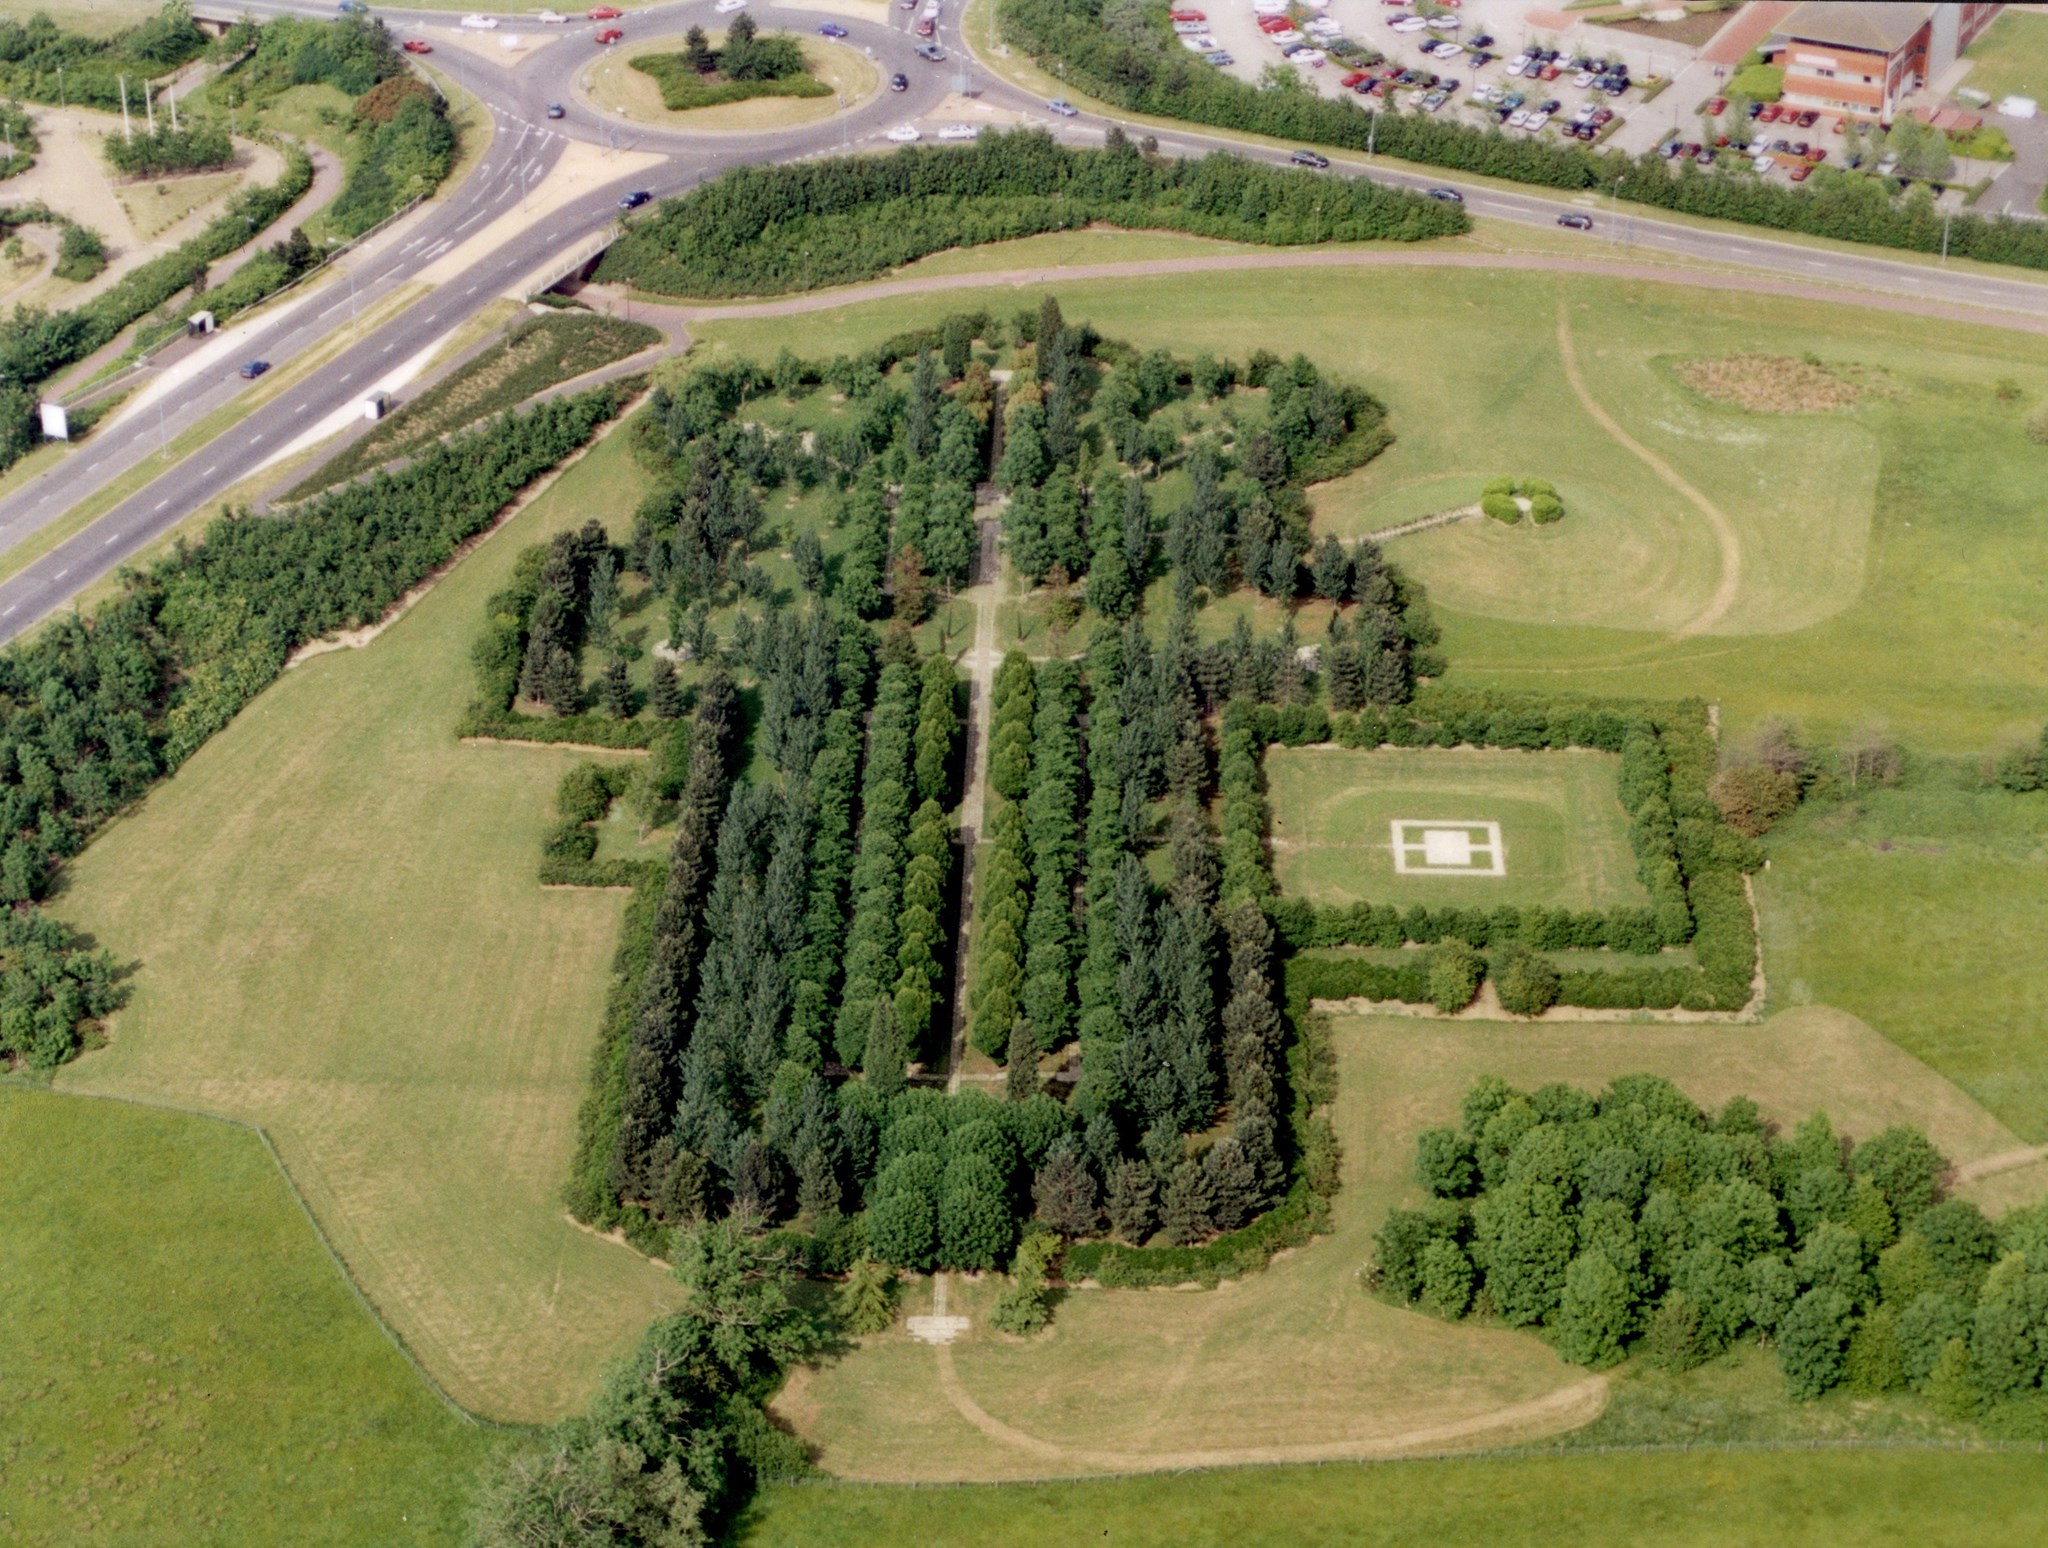 Tree-Cathedral-aerial-view-trees.jpg